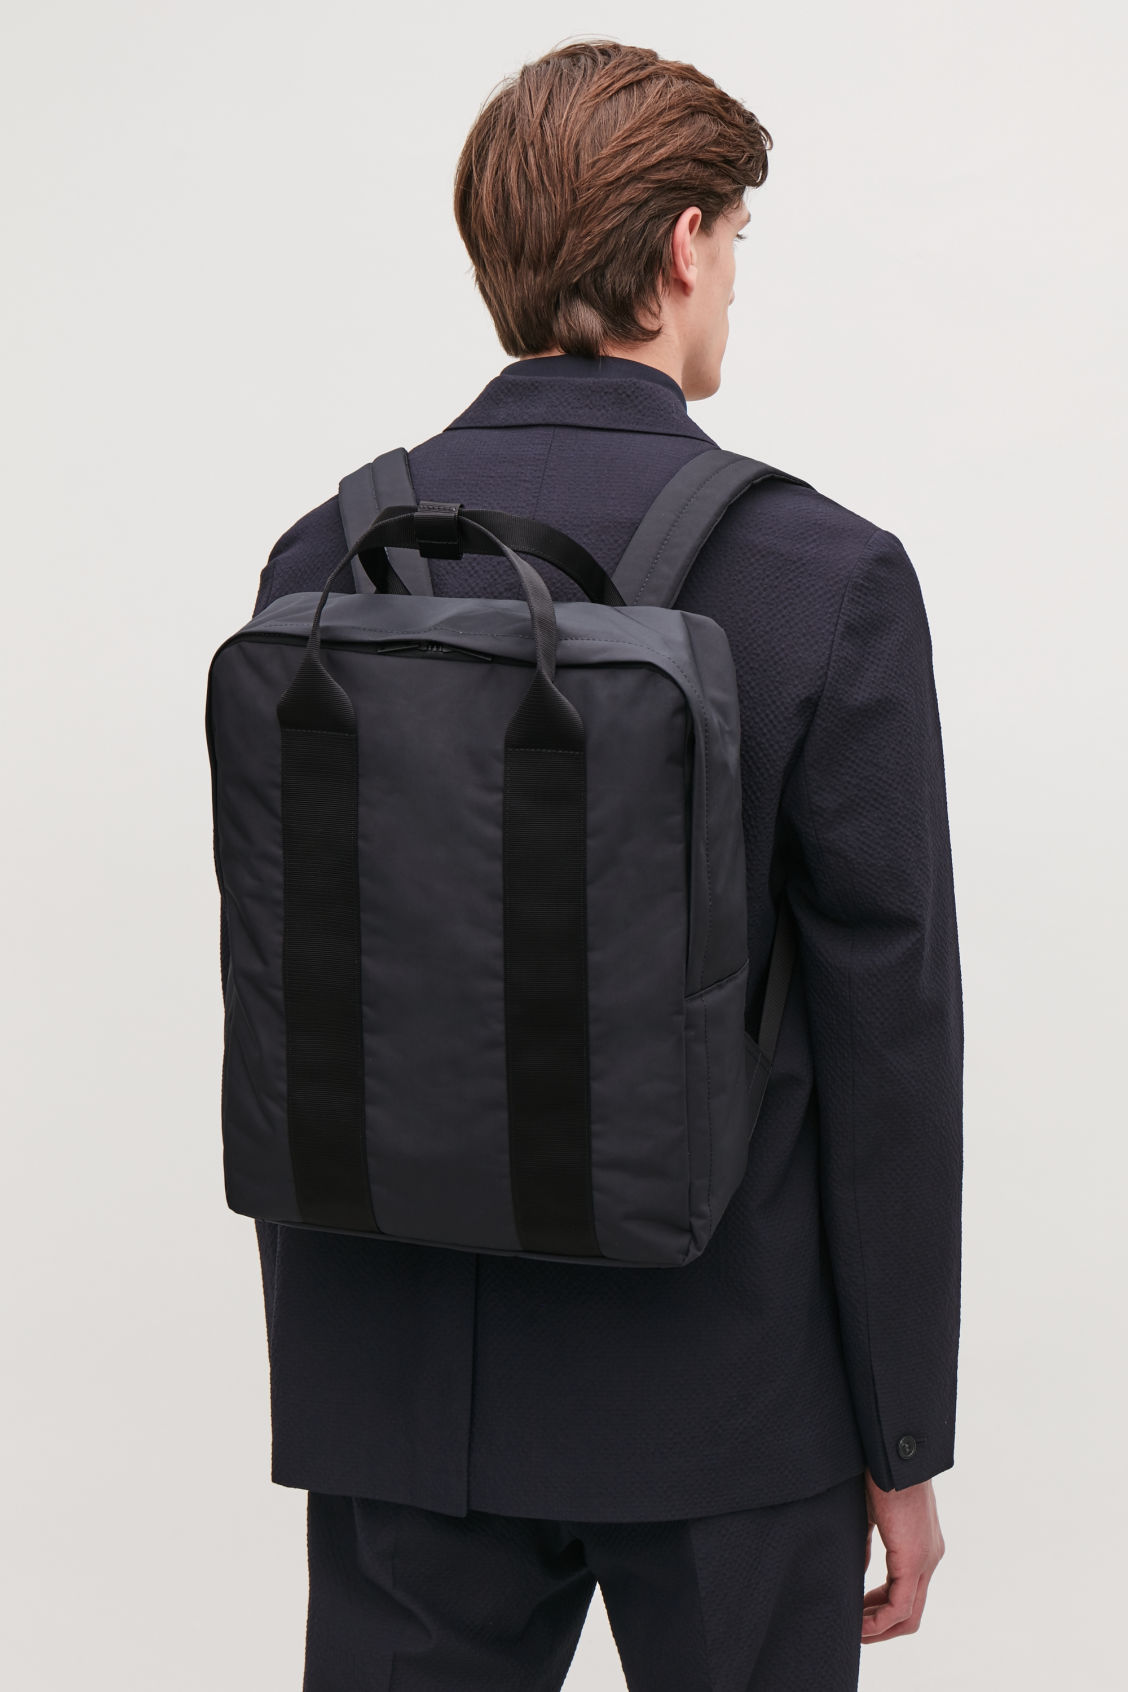 Detailed image of Cos technical tote backpack in blue